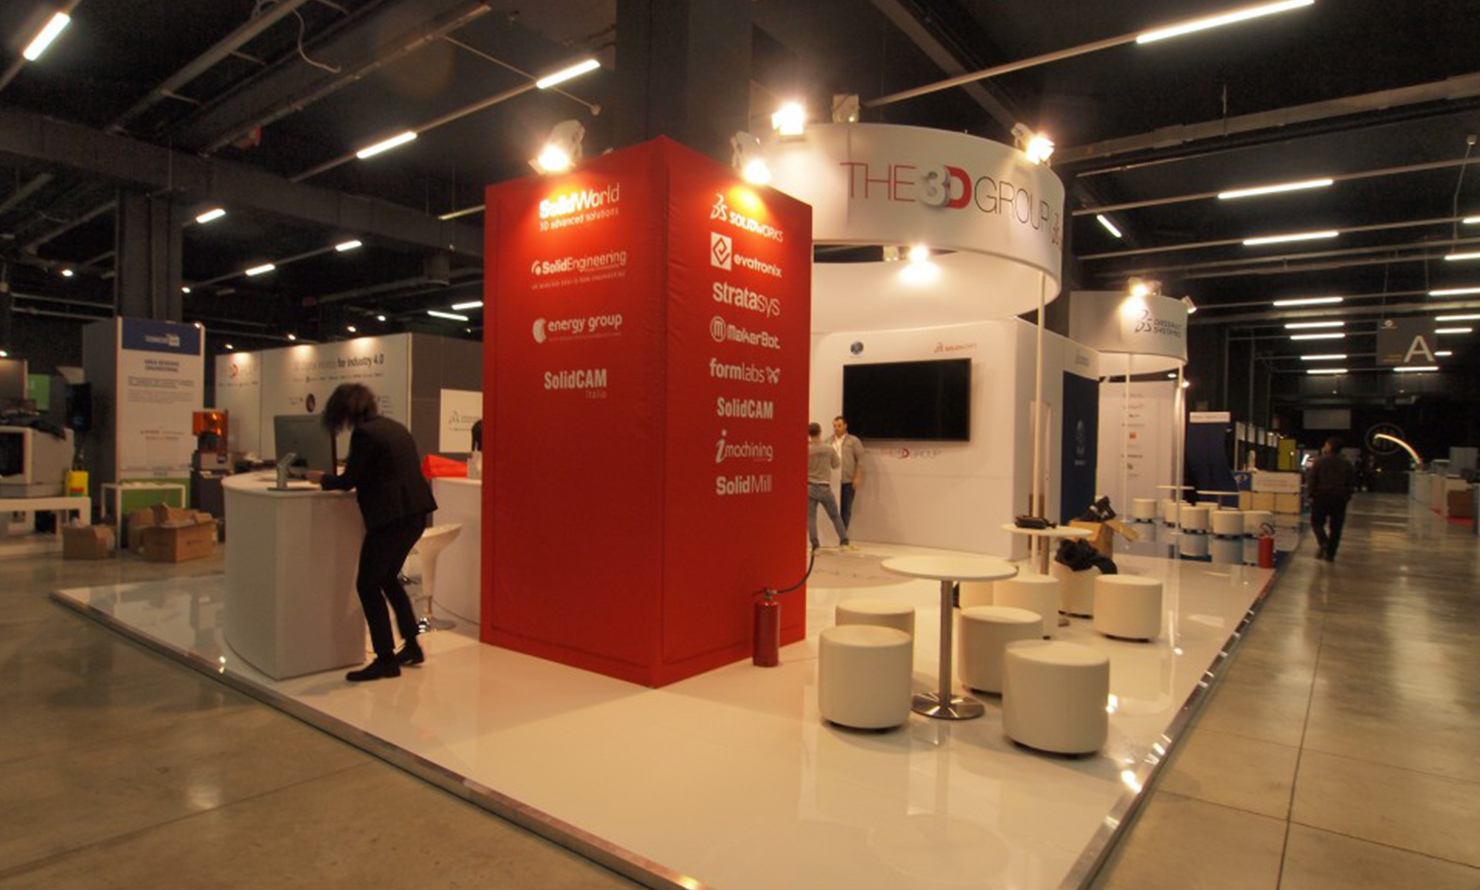 https://kubelibre.com/uploads/Slider-work-tutti-clienti/the3dwork-solid-world-exhibition-2.jpg